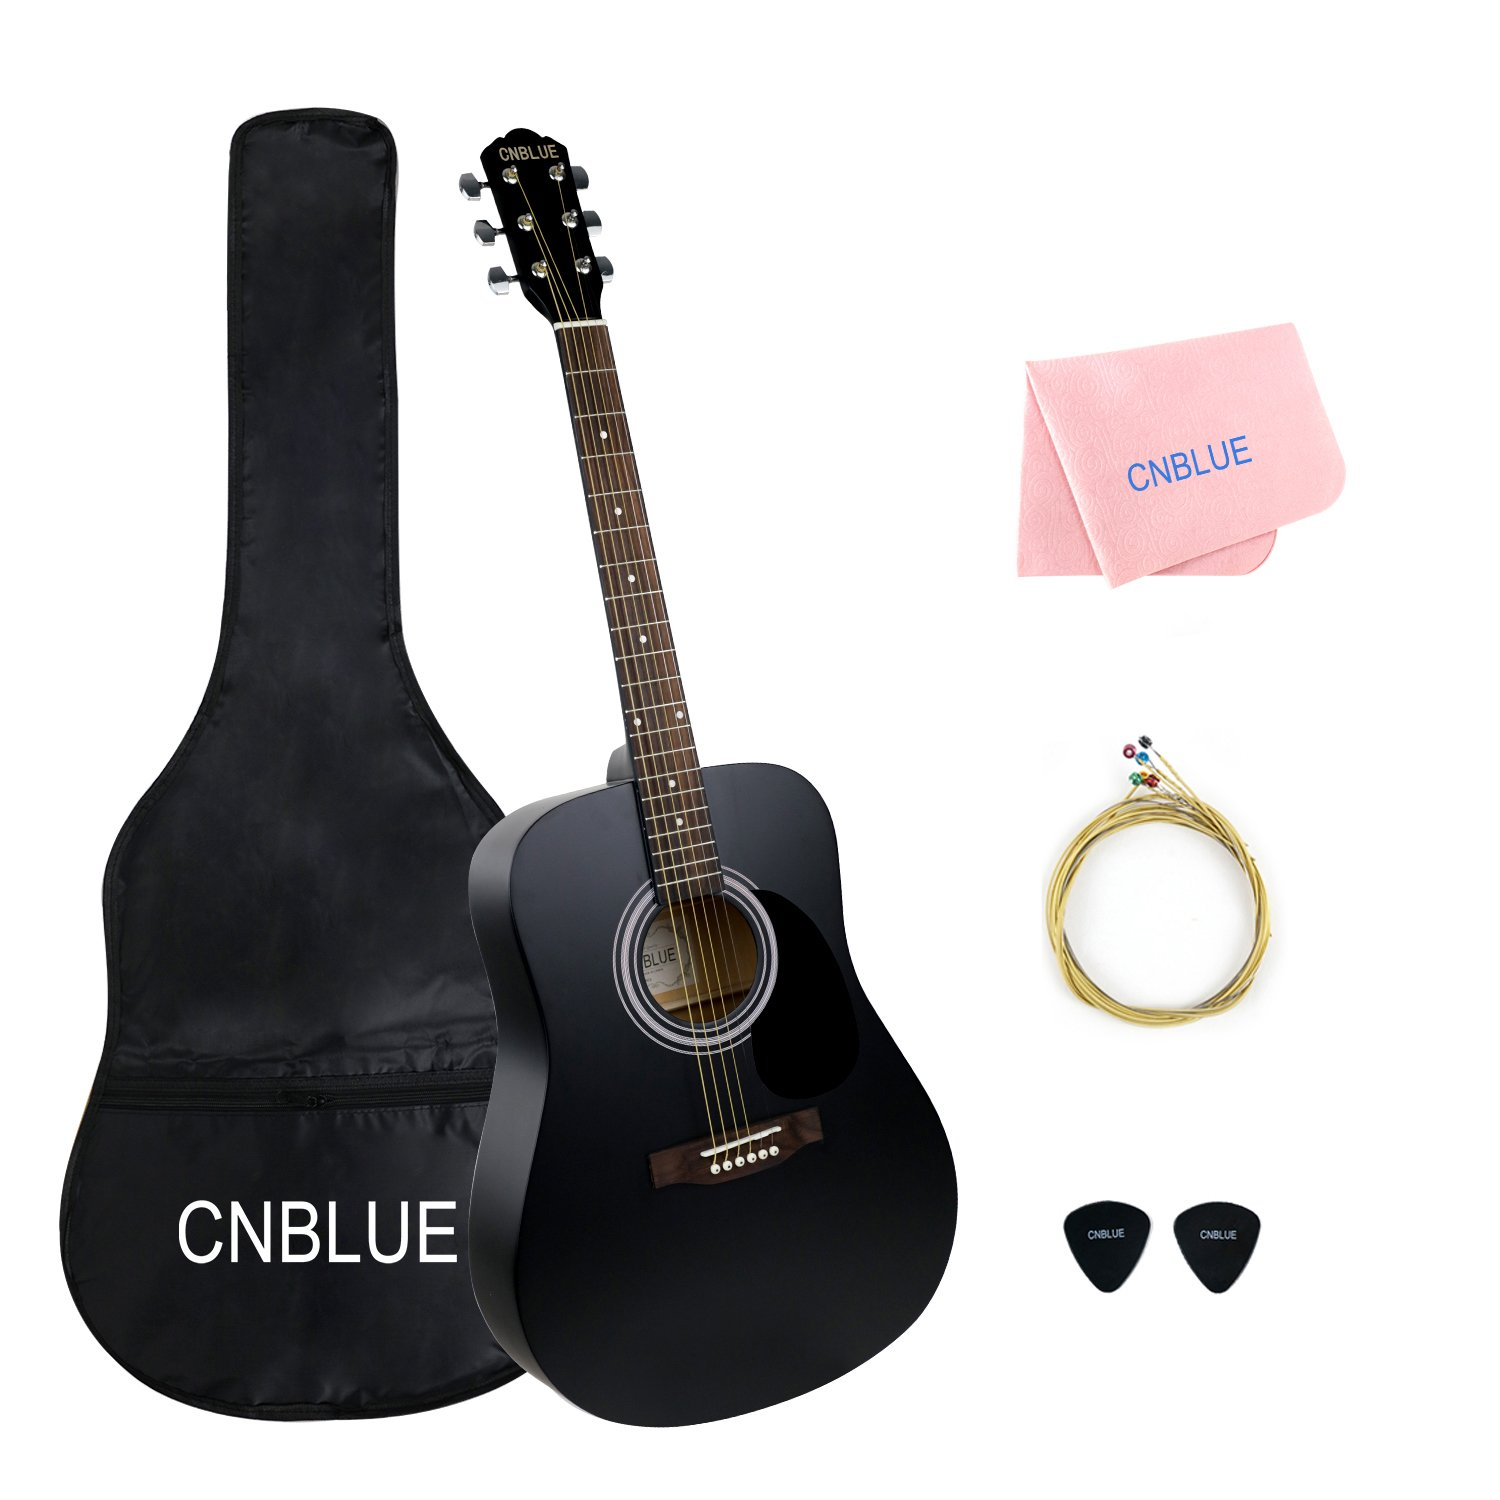 41 inch Acoustic Guitar Starter Kits Full Size Student Steel String Acoustic Guitar Package with Bag Wipe Picks Extra String (Dreadnought) CNBLUE CB-41YHZ